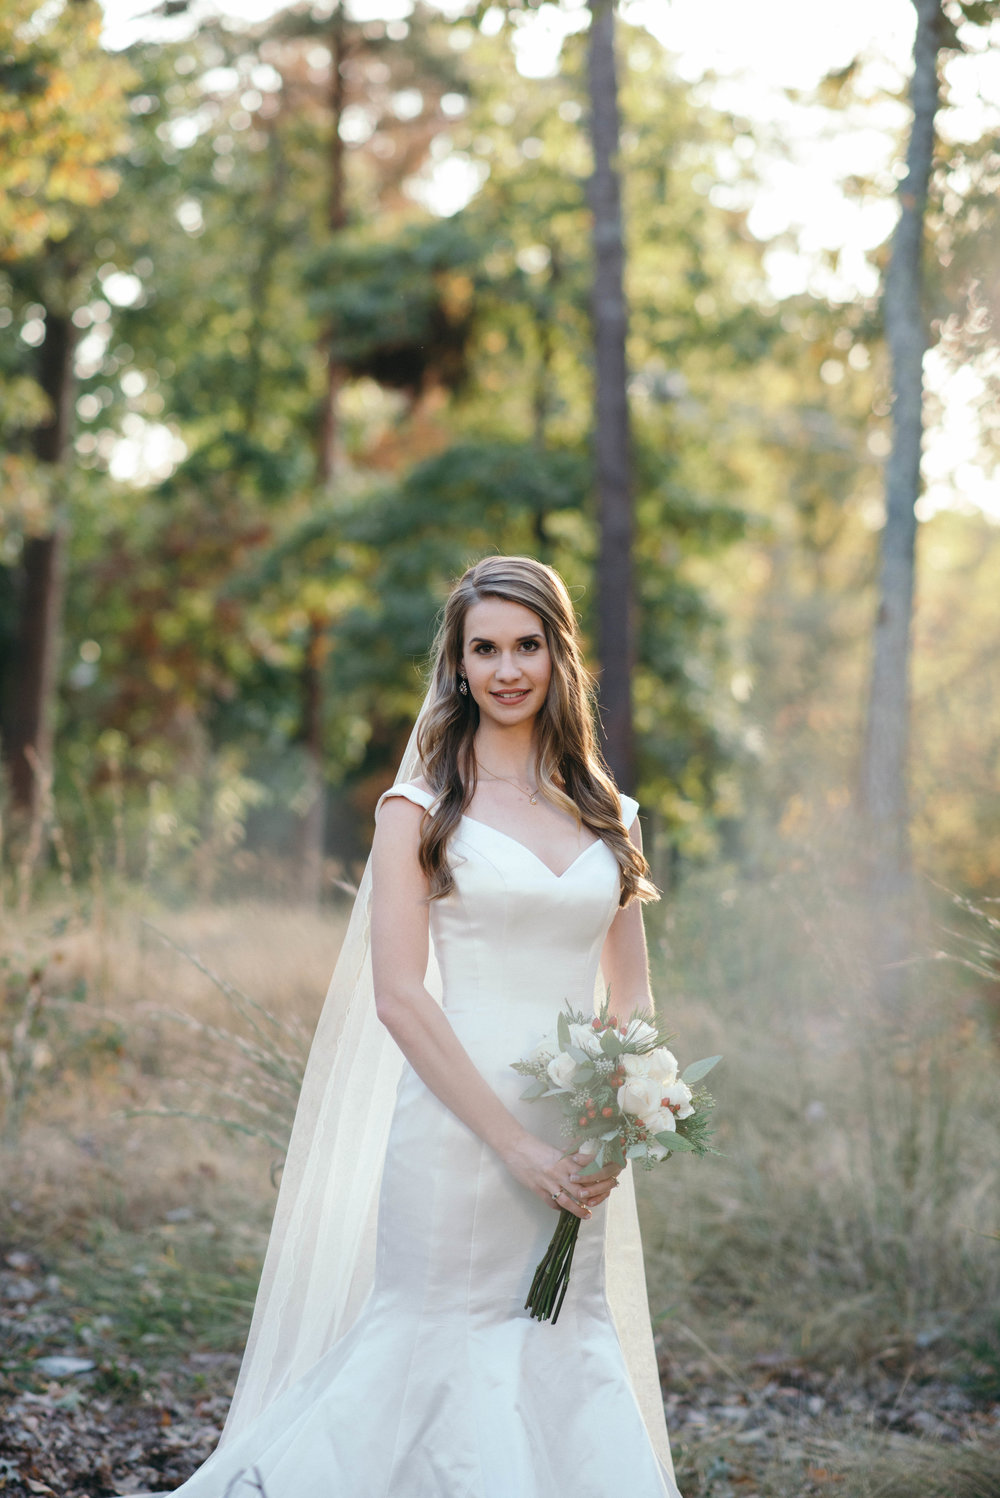 JuliaWilliams|Bridals|Color_MiraPhotographs-46.jpg